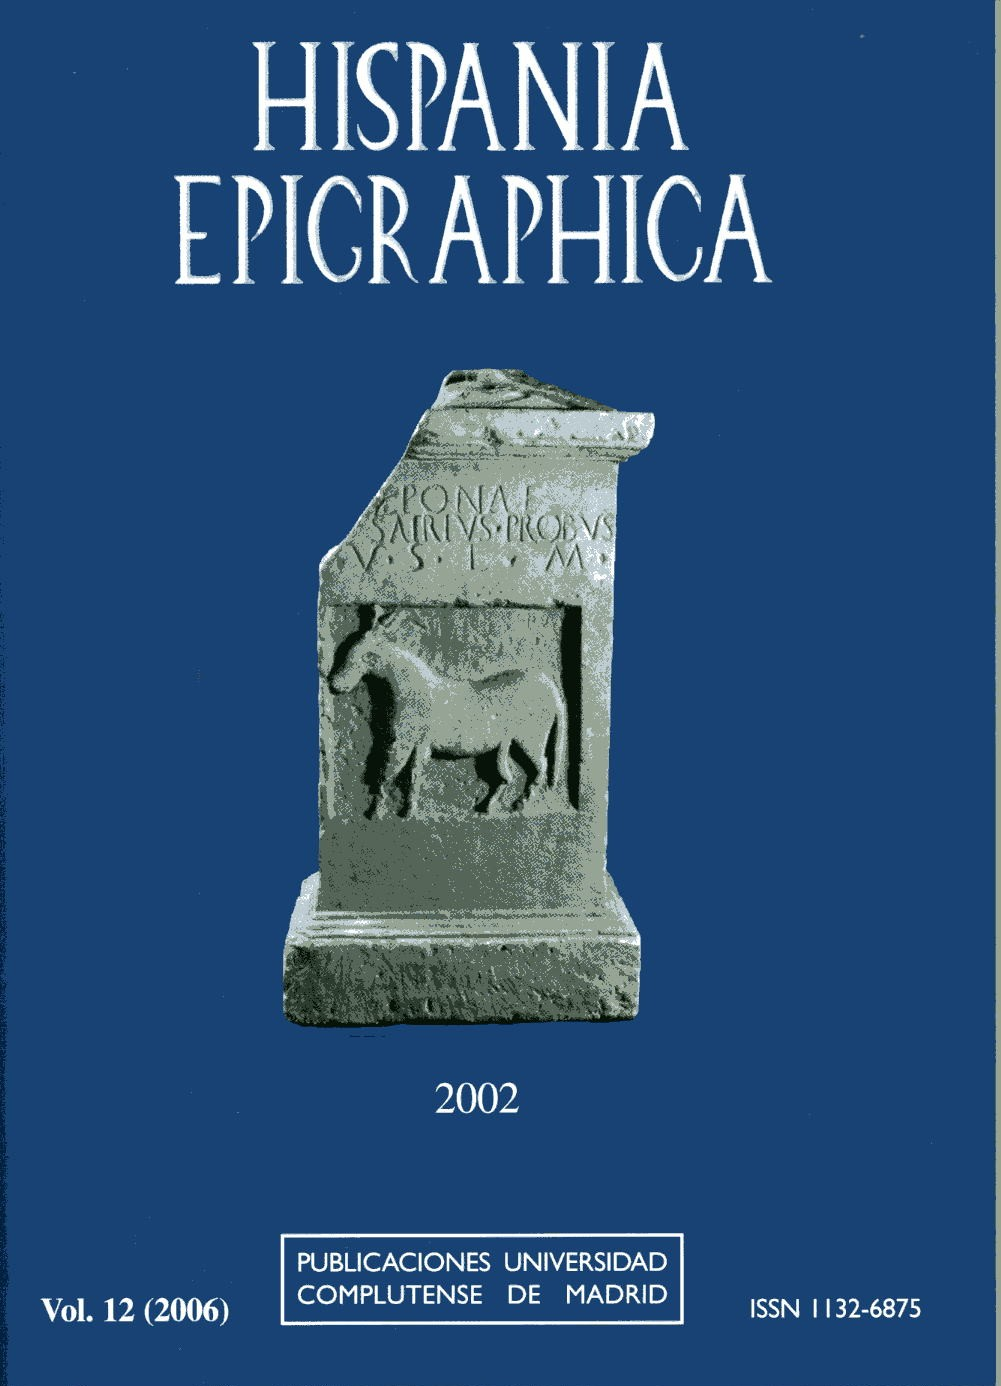 Cubierta Hispania Epigraphica vol 12